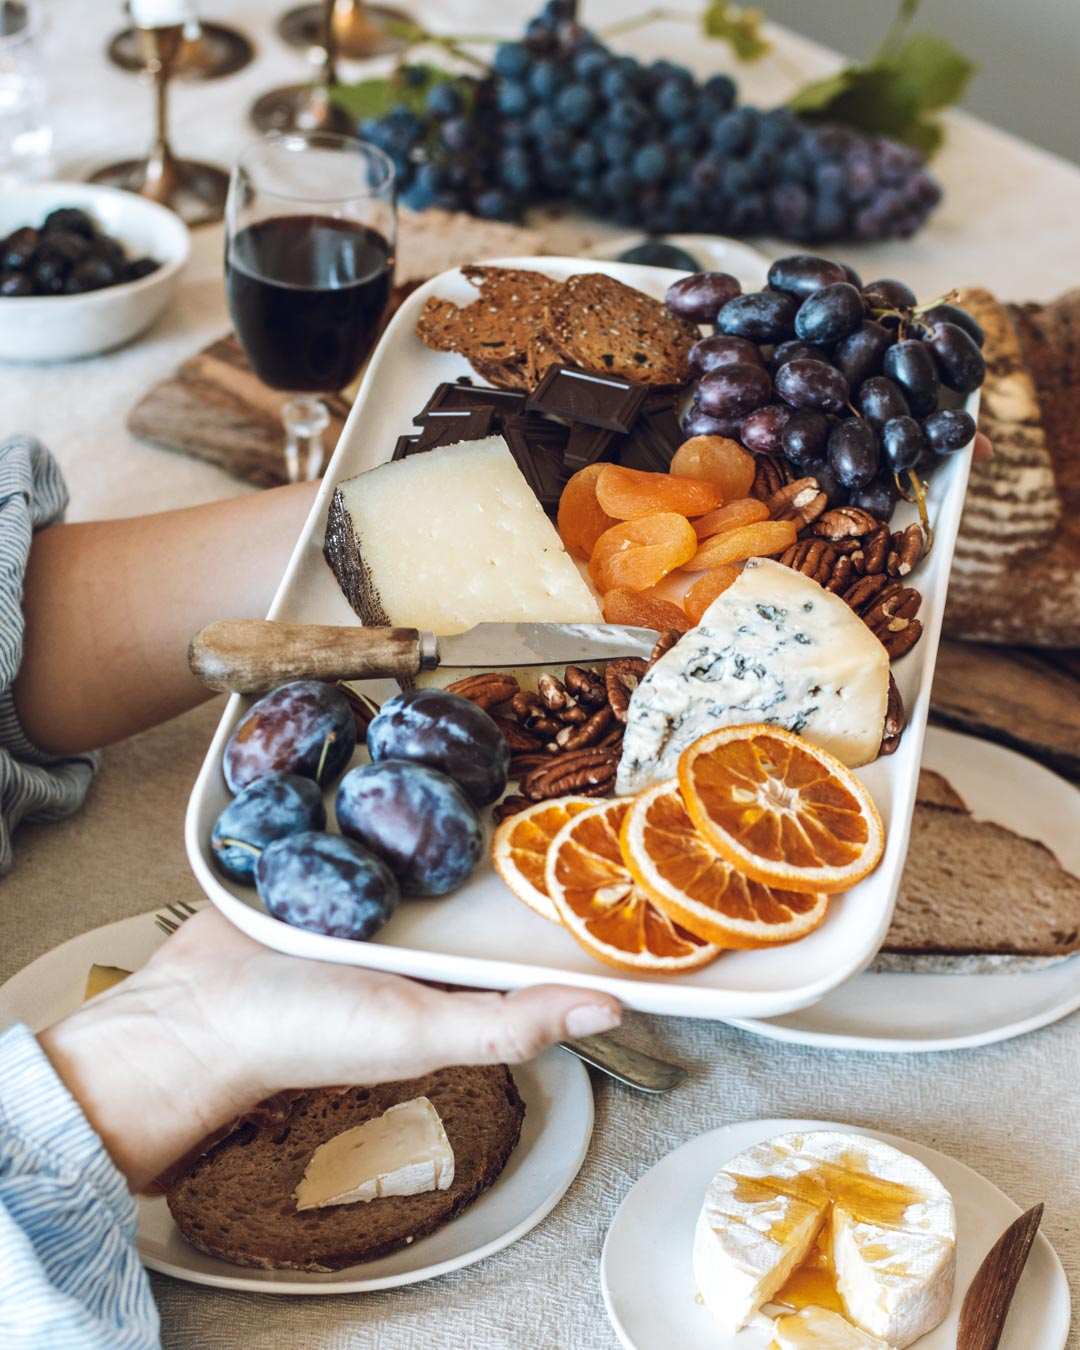 Passing a handmade ceramic platter laden with nuts, fruits and cheese across the table